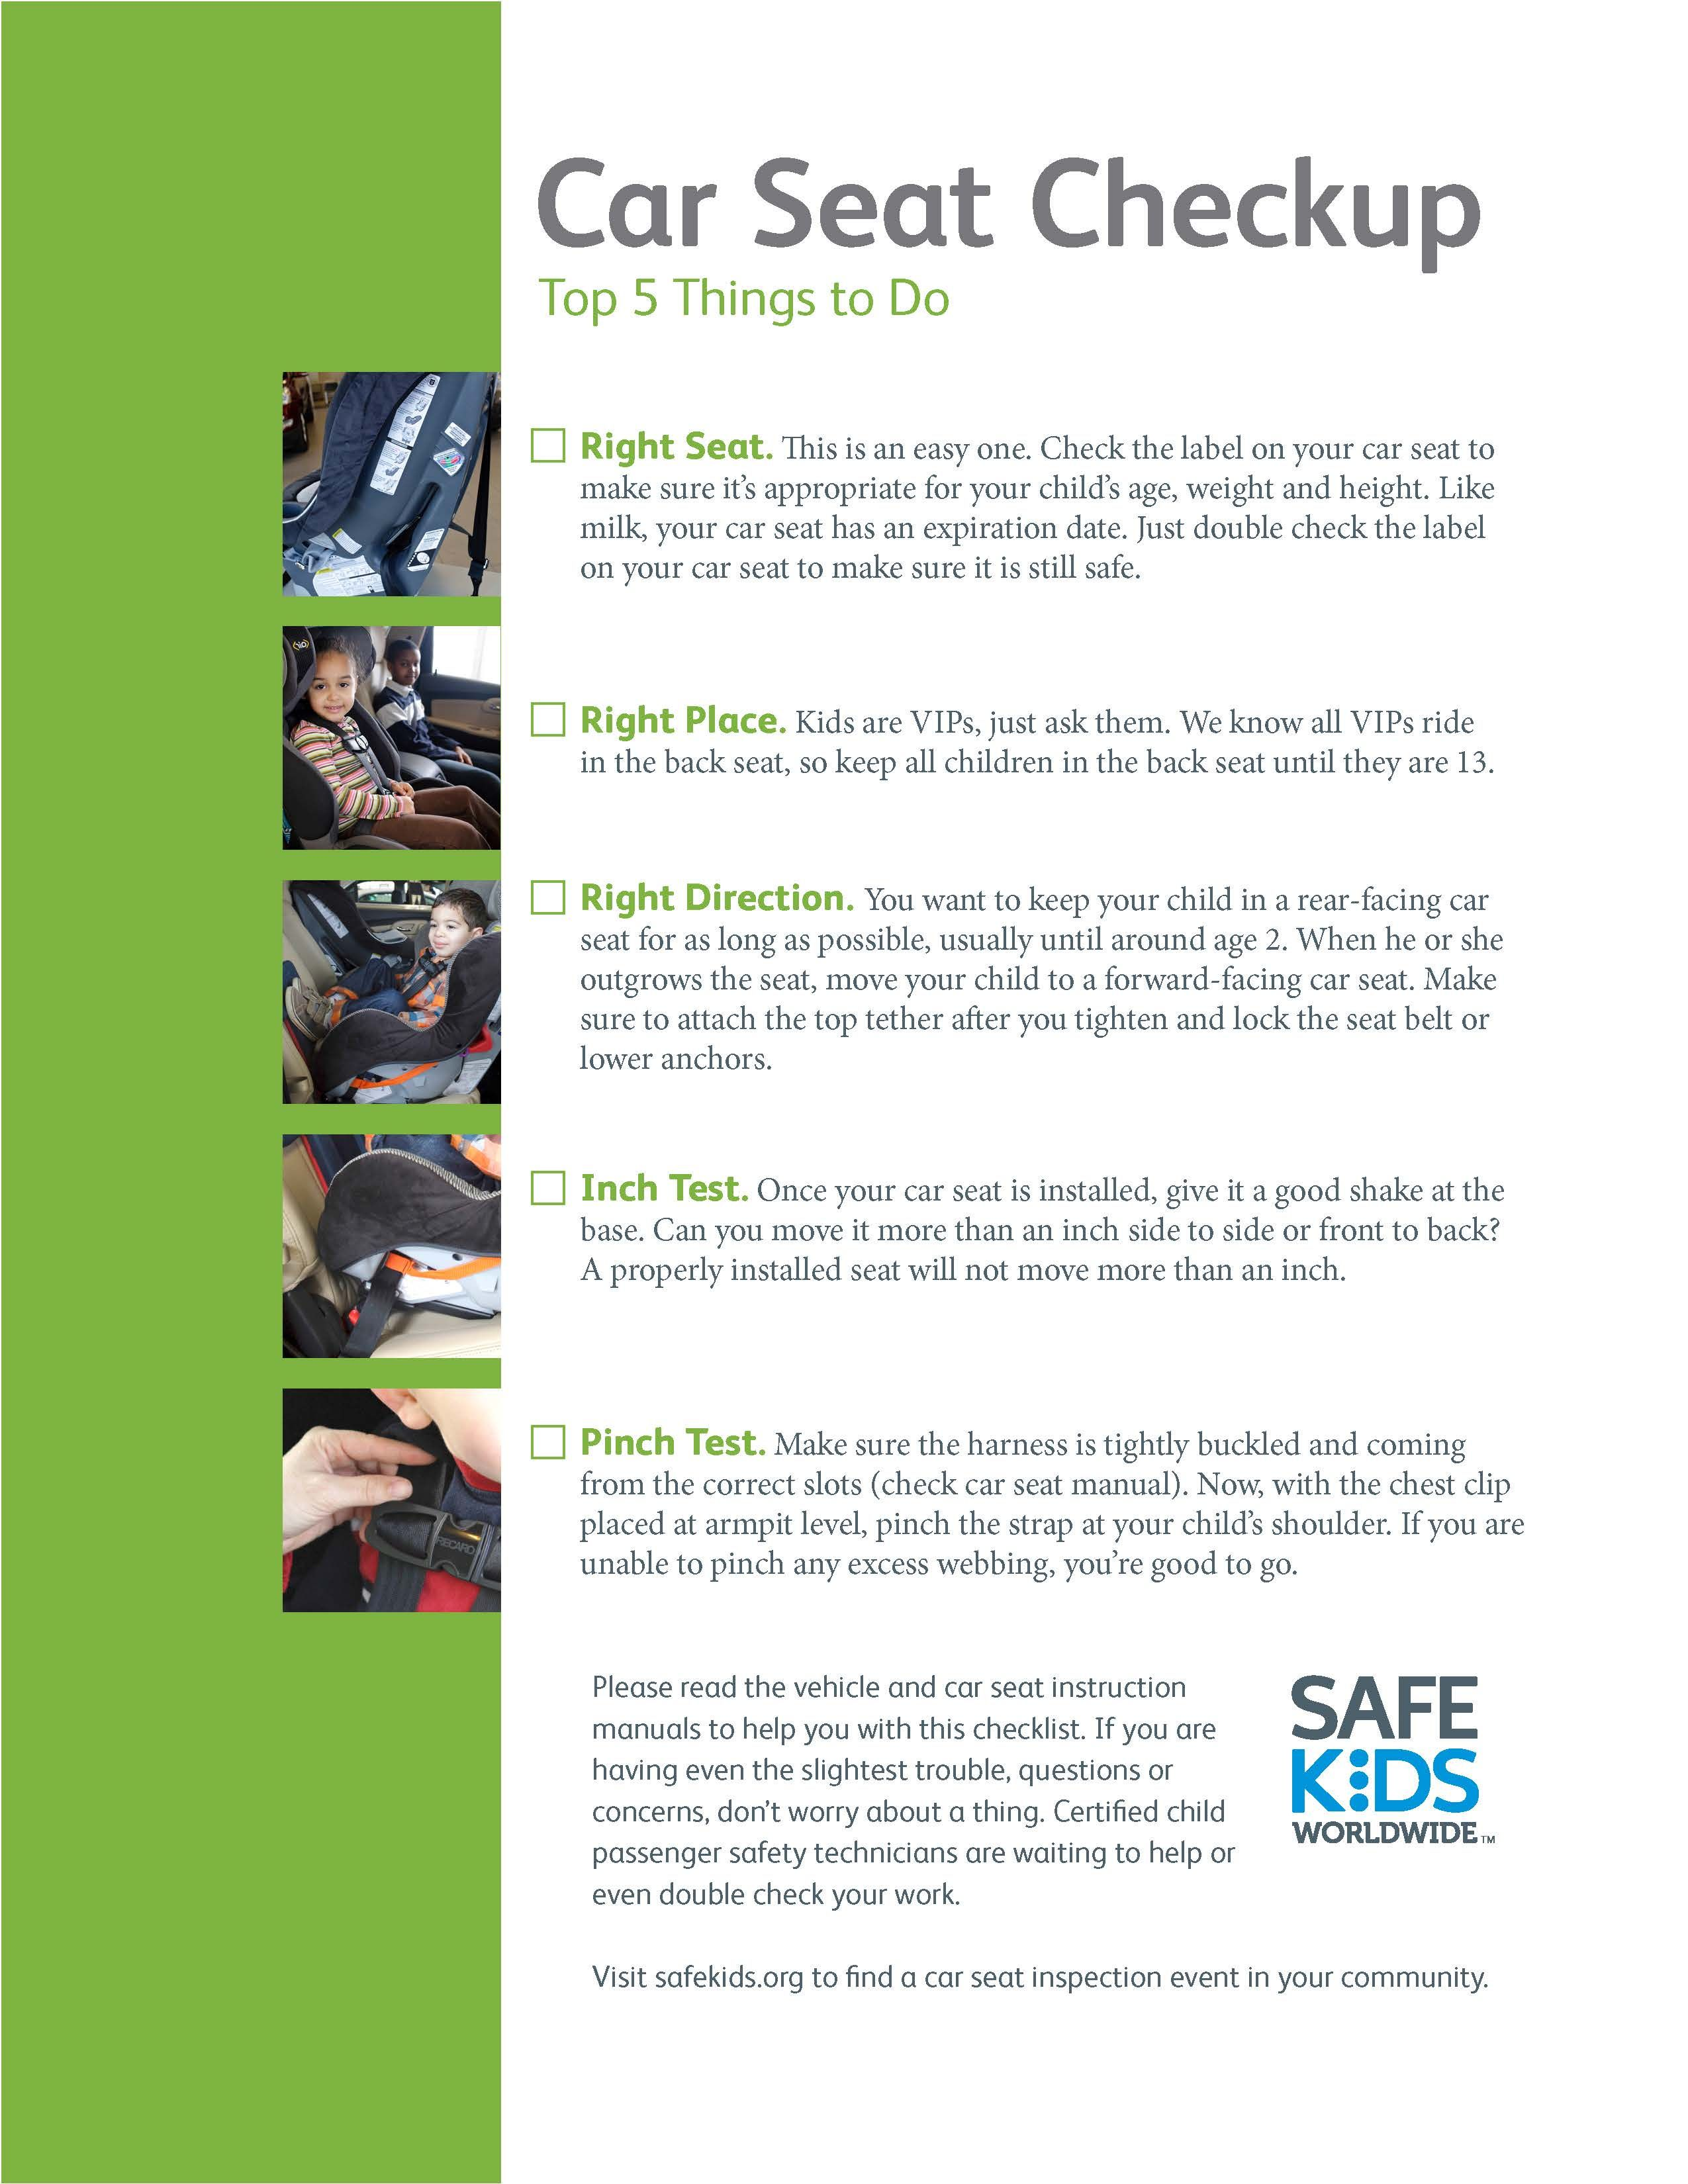 Car Seat Safety Checklist! Car seats, Child passenger